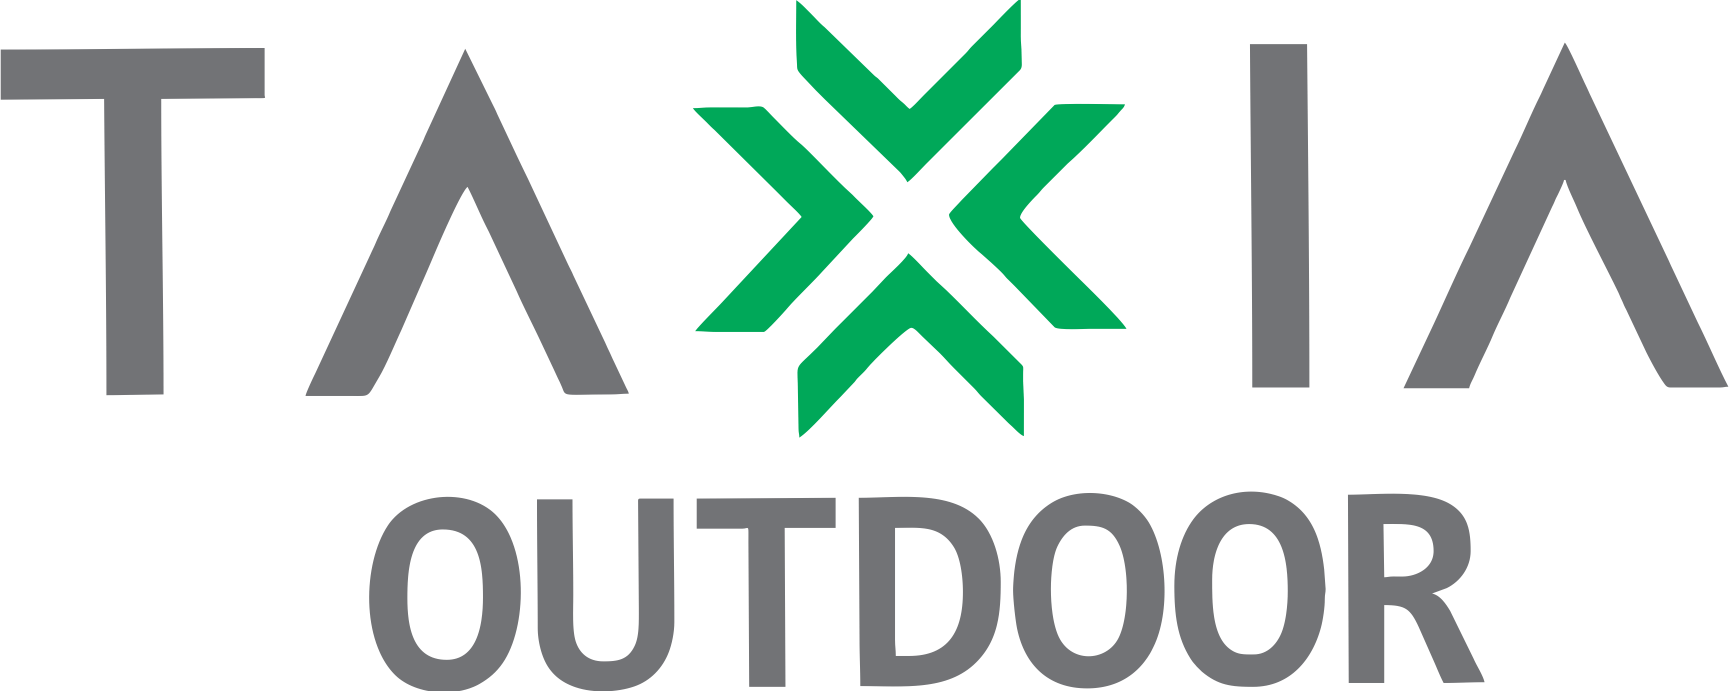 Taxia Outdoor